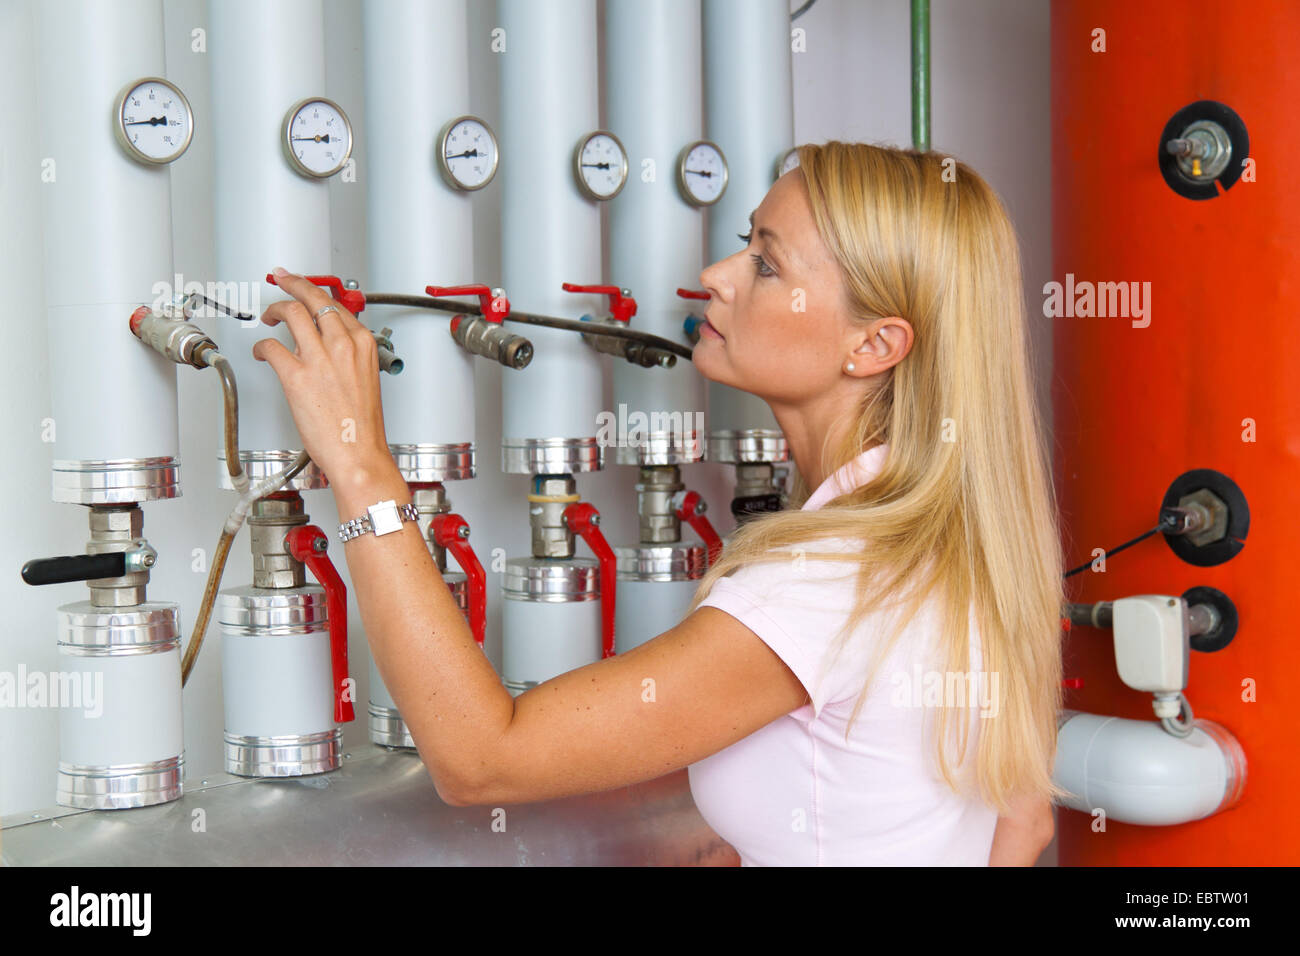 young woman in the boiler room reading the water meter - Stock Image